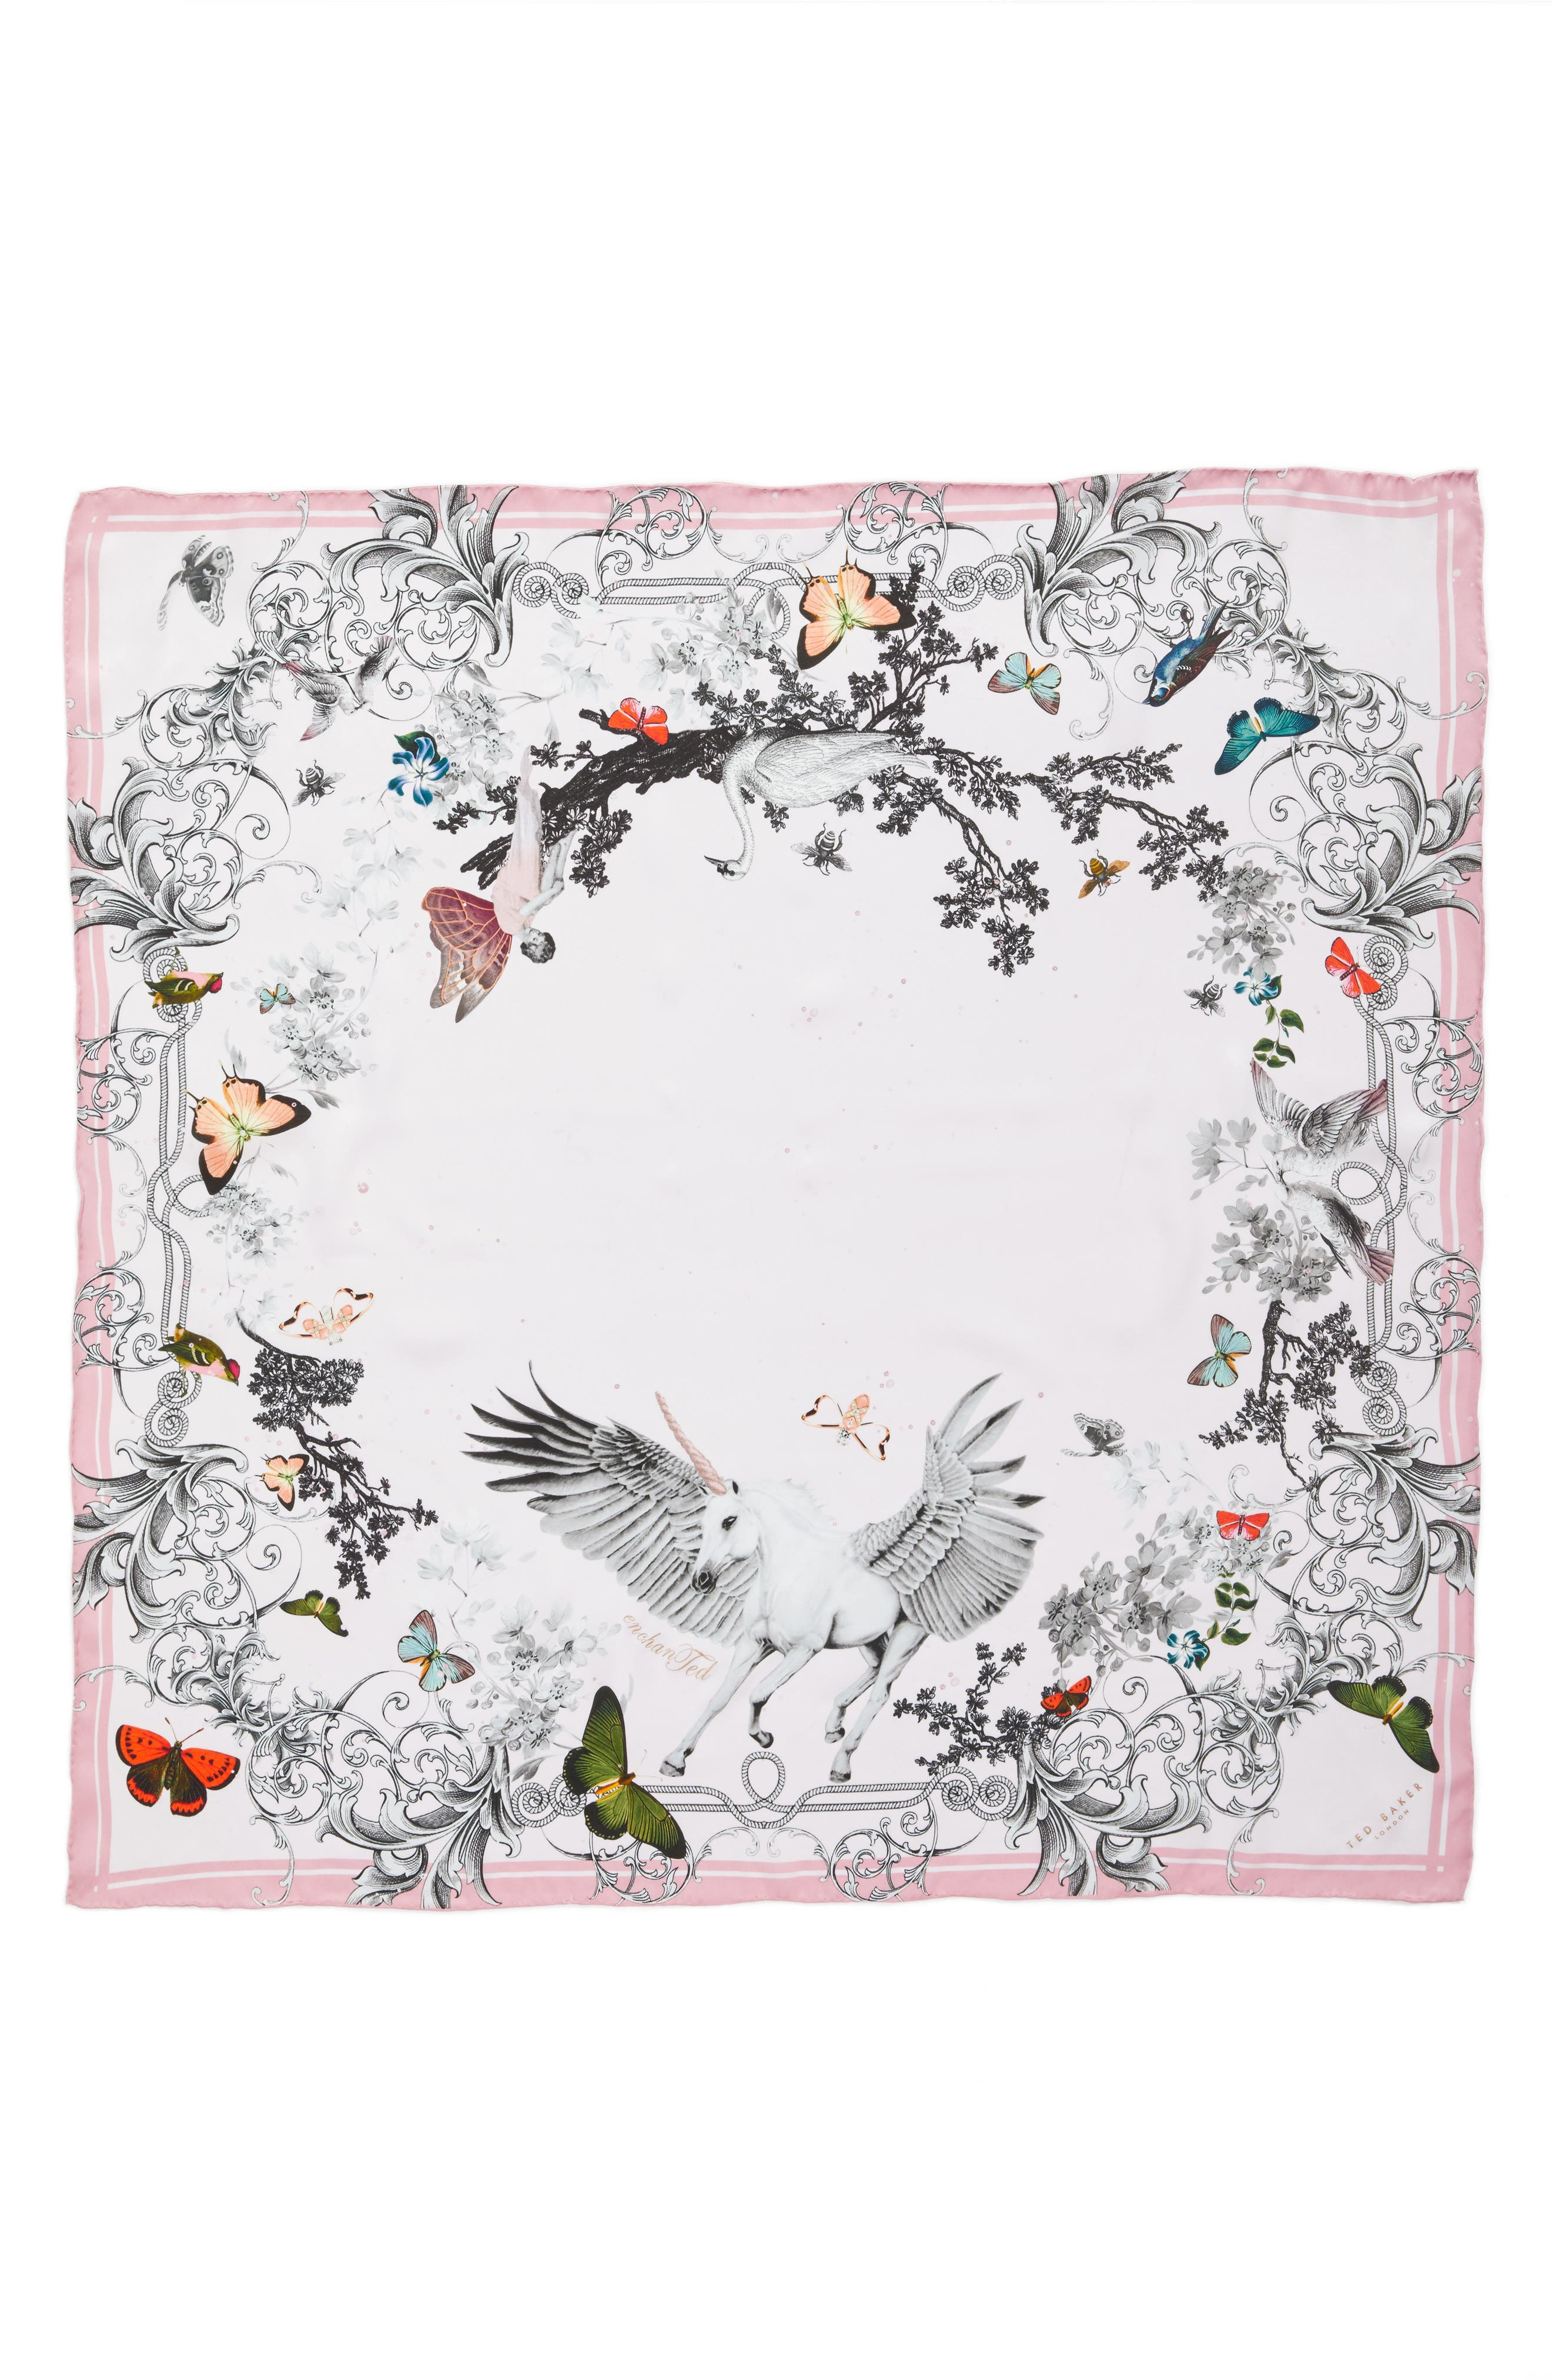 Enchanted Dream Silk Square Scarf,                             Alternate thumbnail 3, color,                             59-Pale Pink